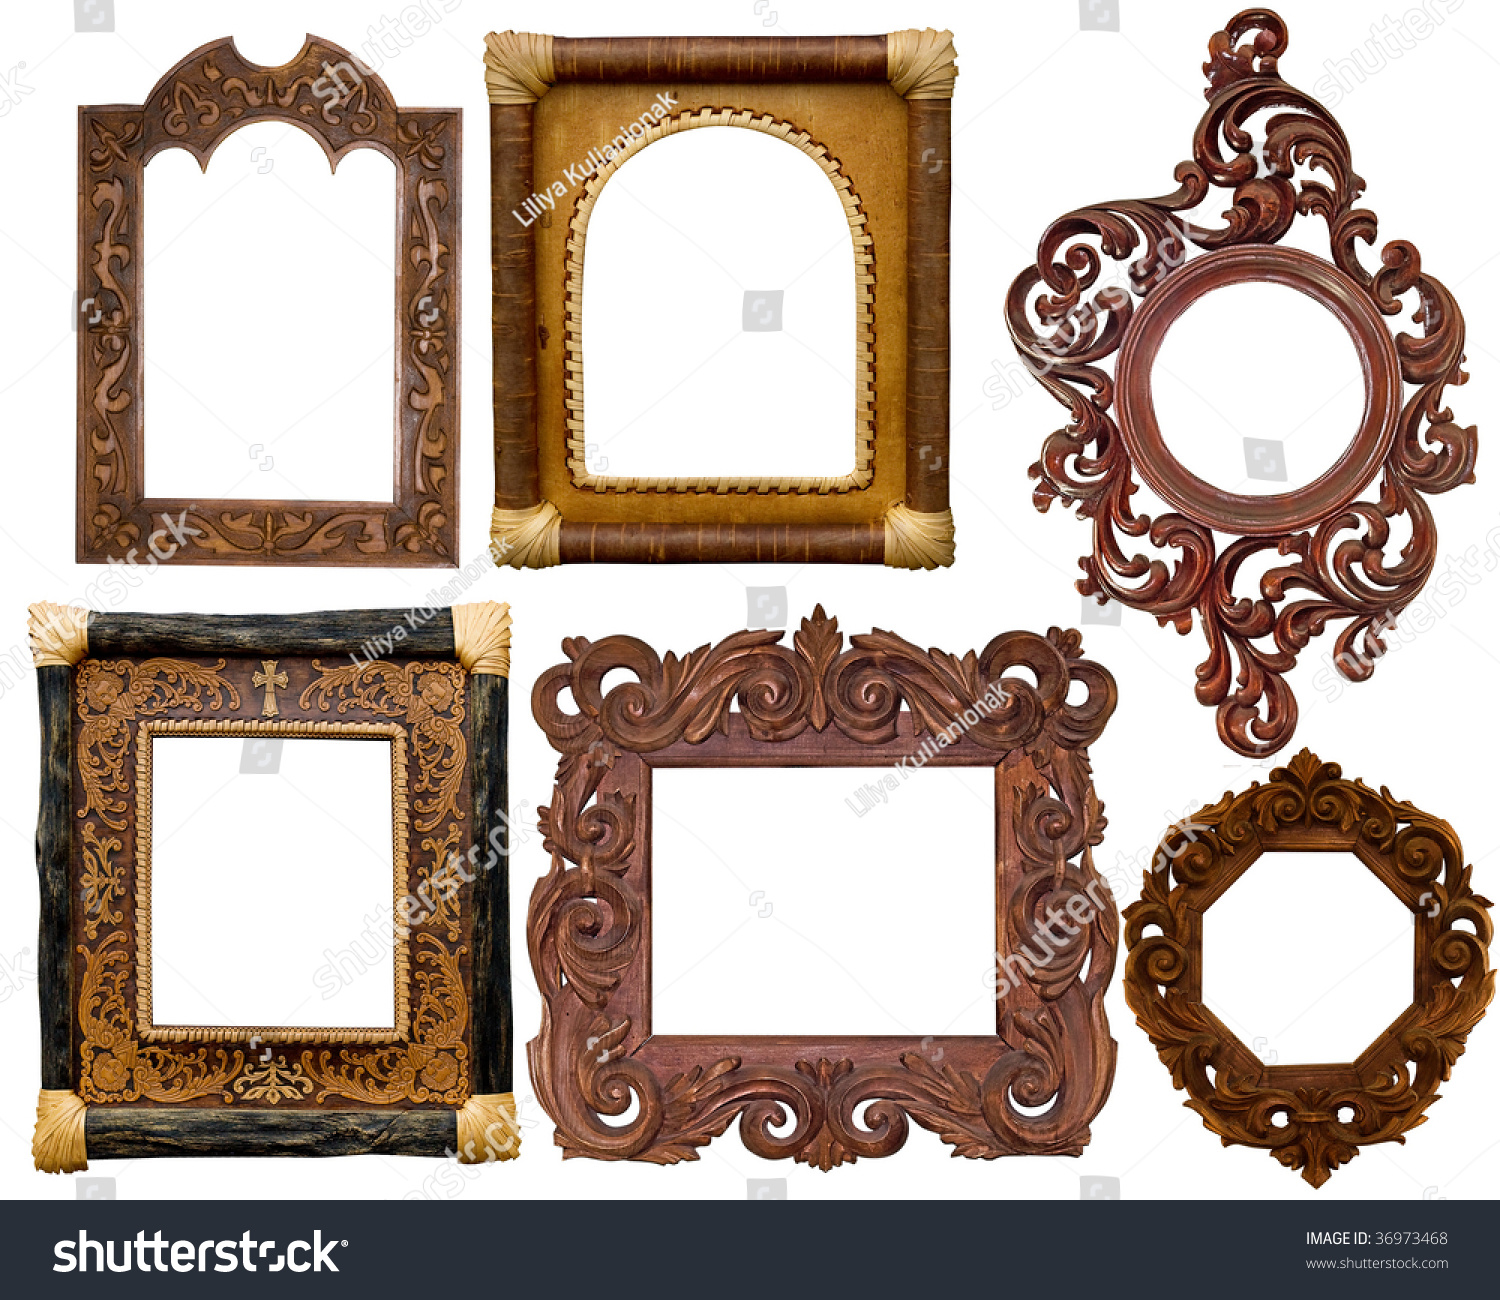 collection of carved decorative frames - Decorative Frames